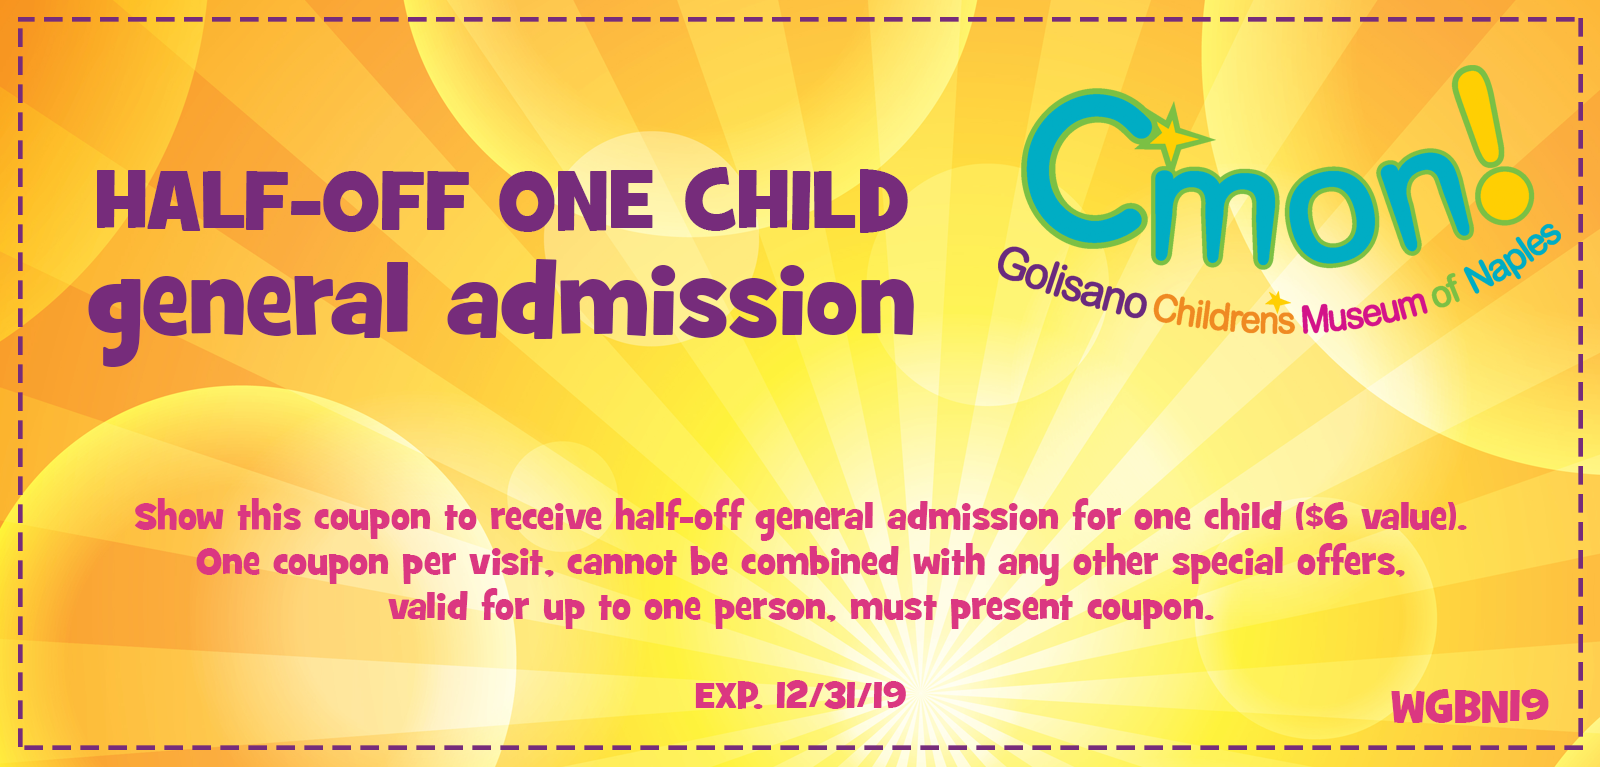 Website Coupon - CMON Childrens Museum